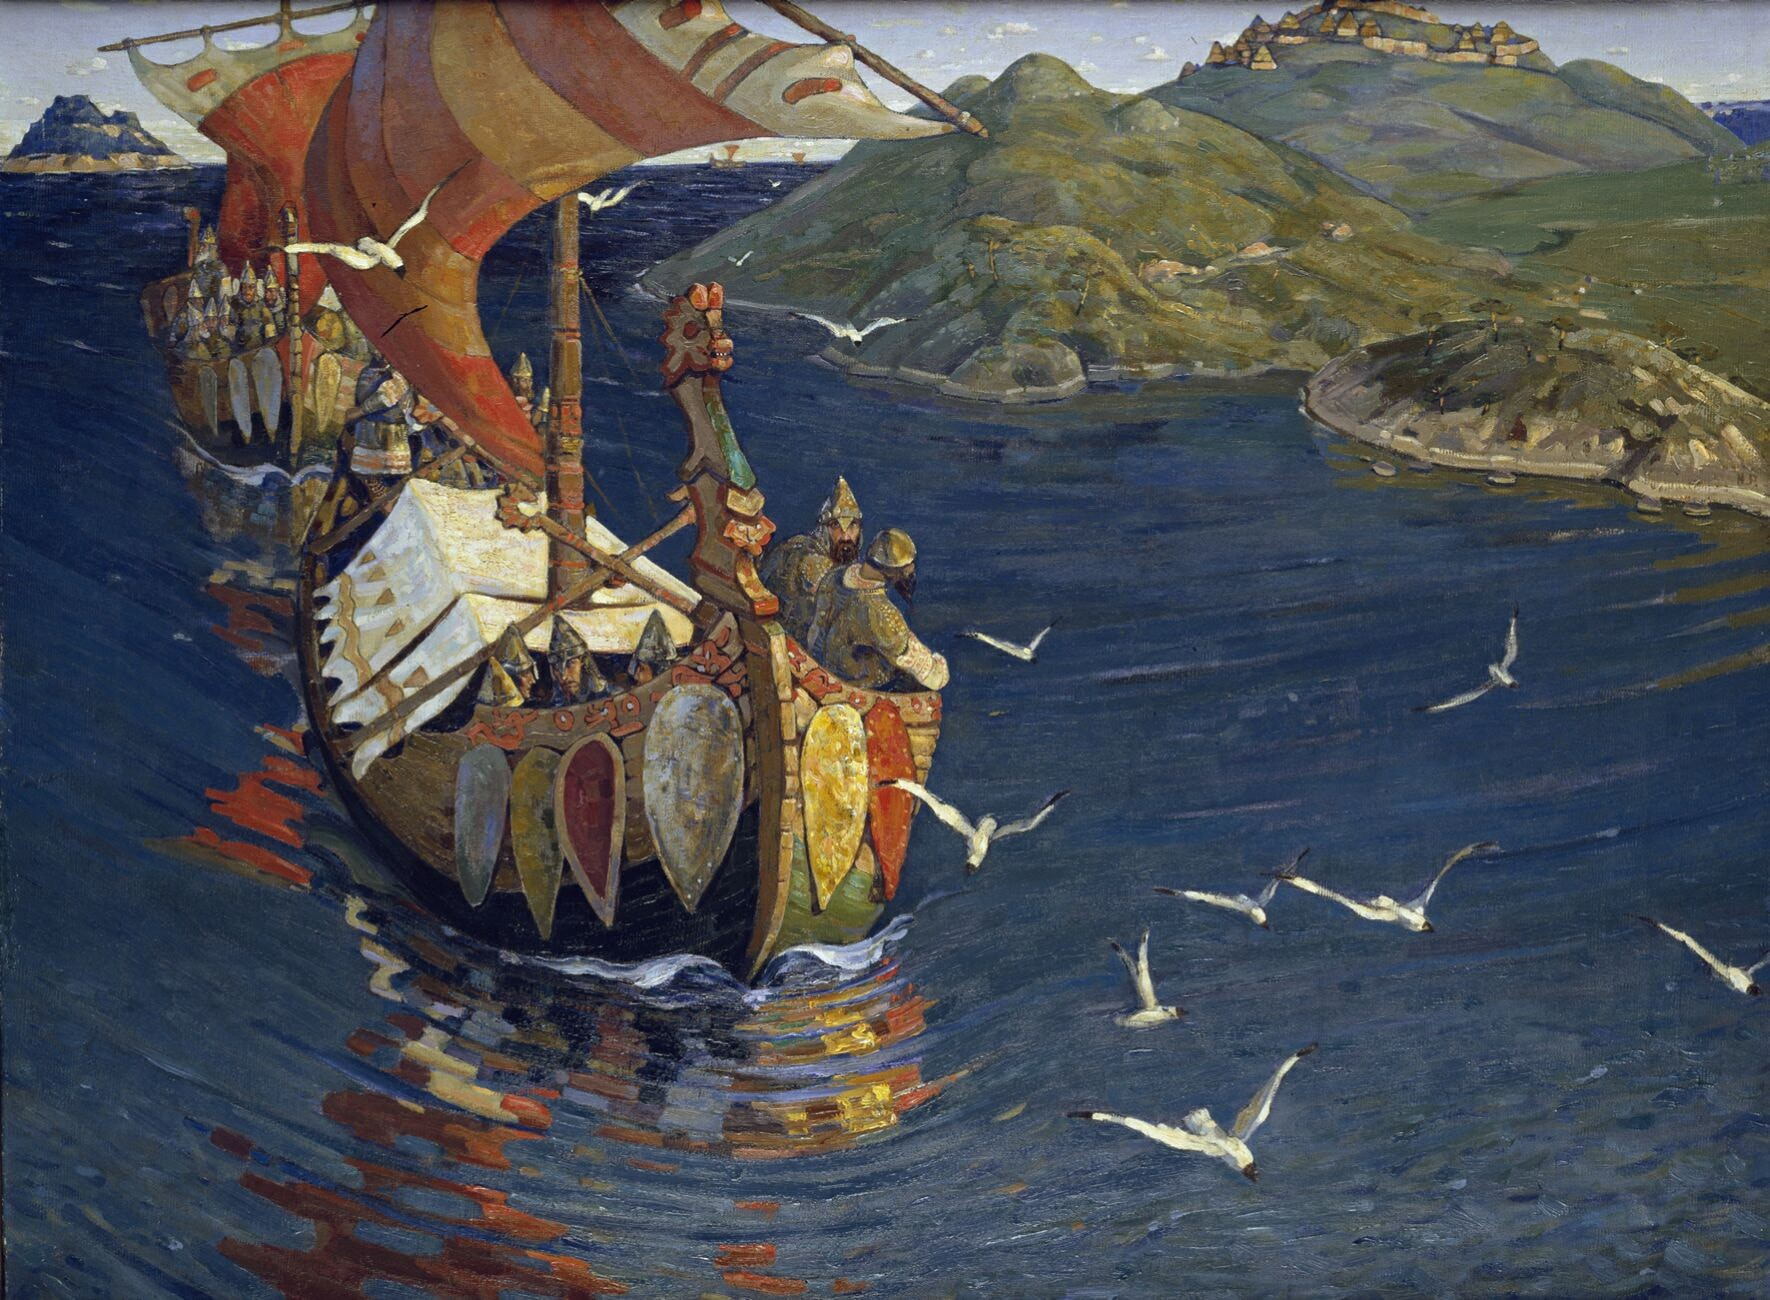 'Guests from Overseas' (1901) by Nicholas Roerich